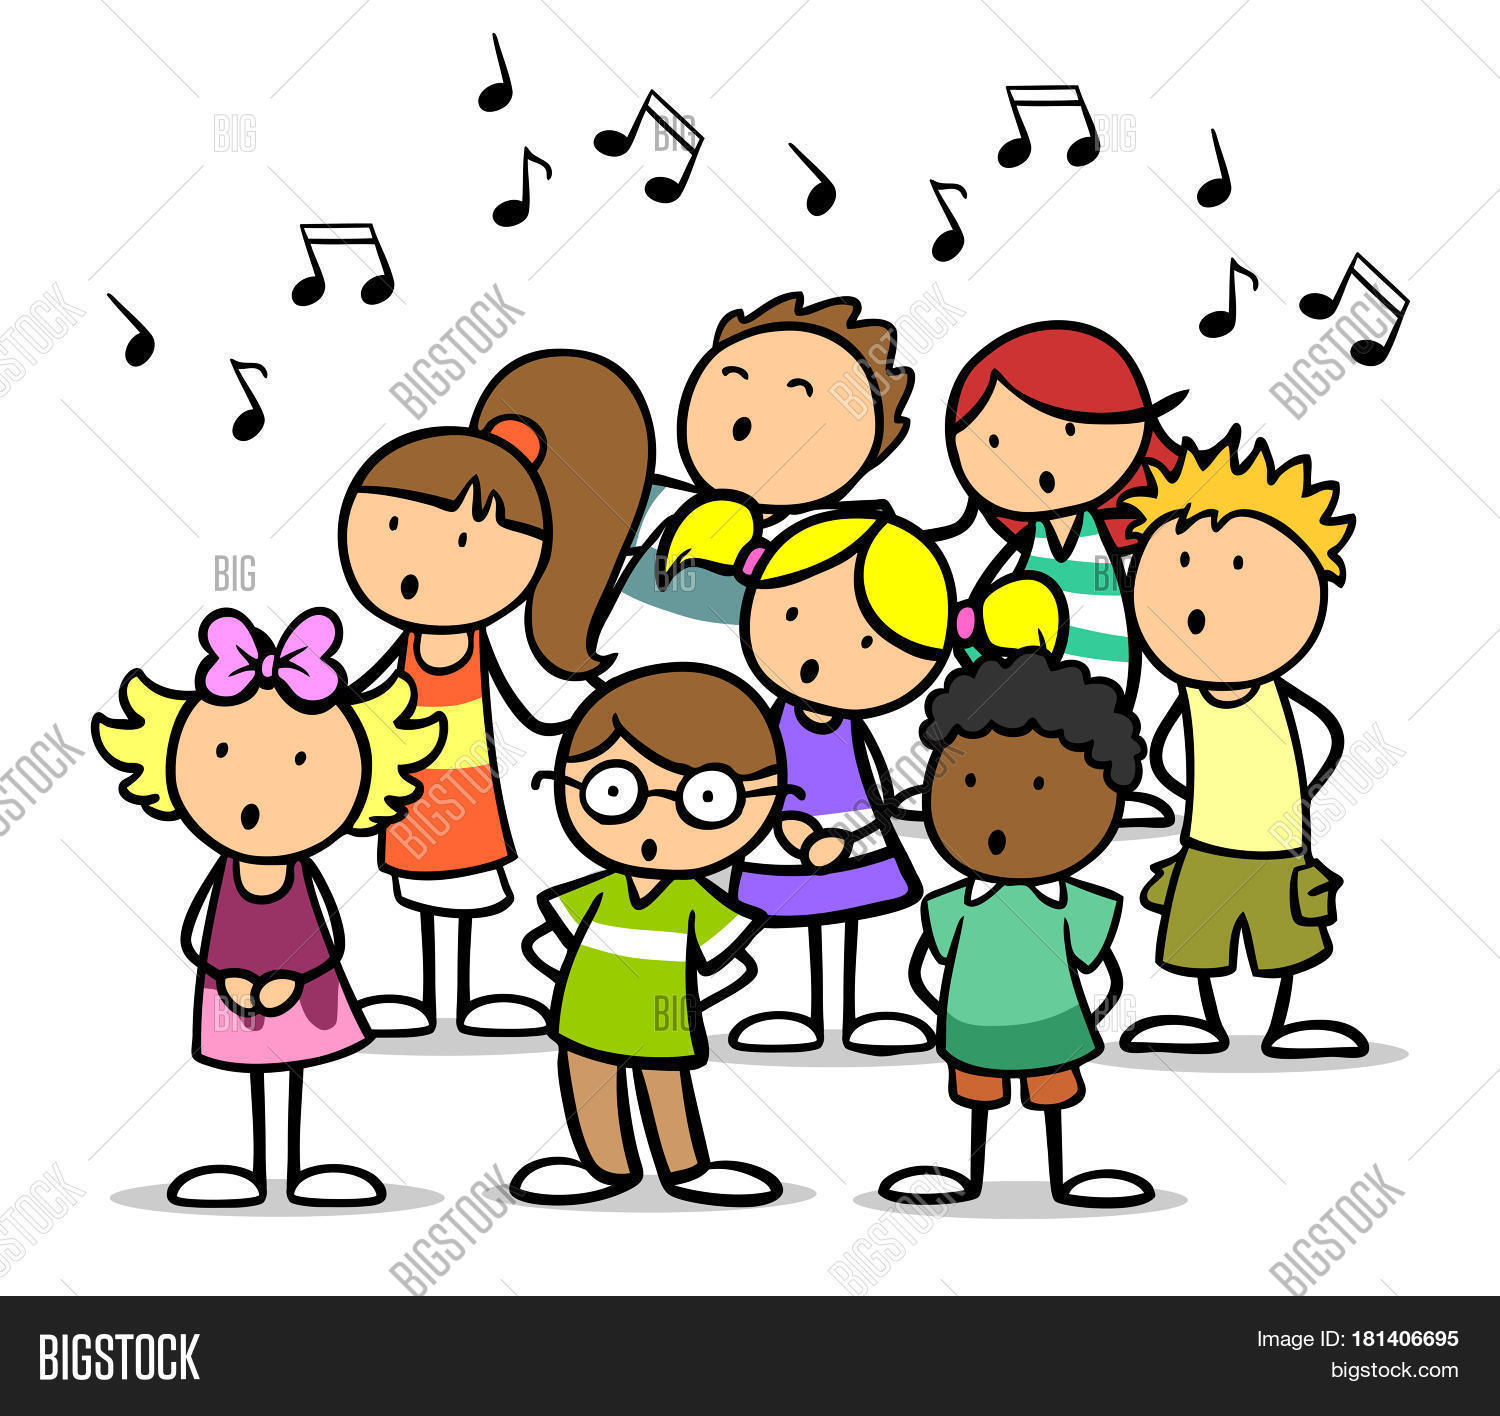 cartoon choir of children singing song as music school concept - Cartoon Image Of Children